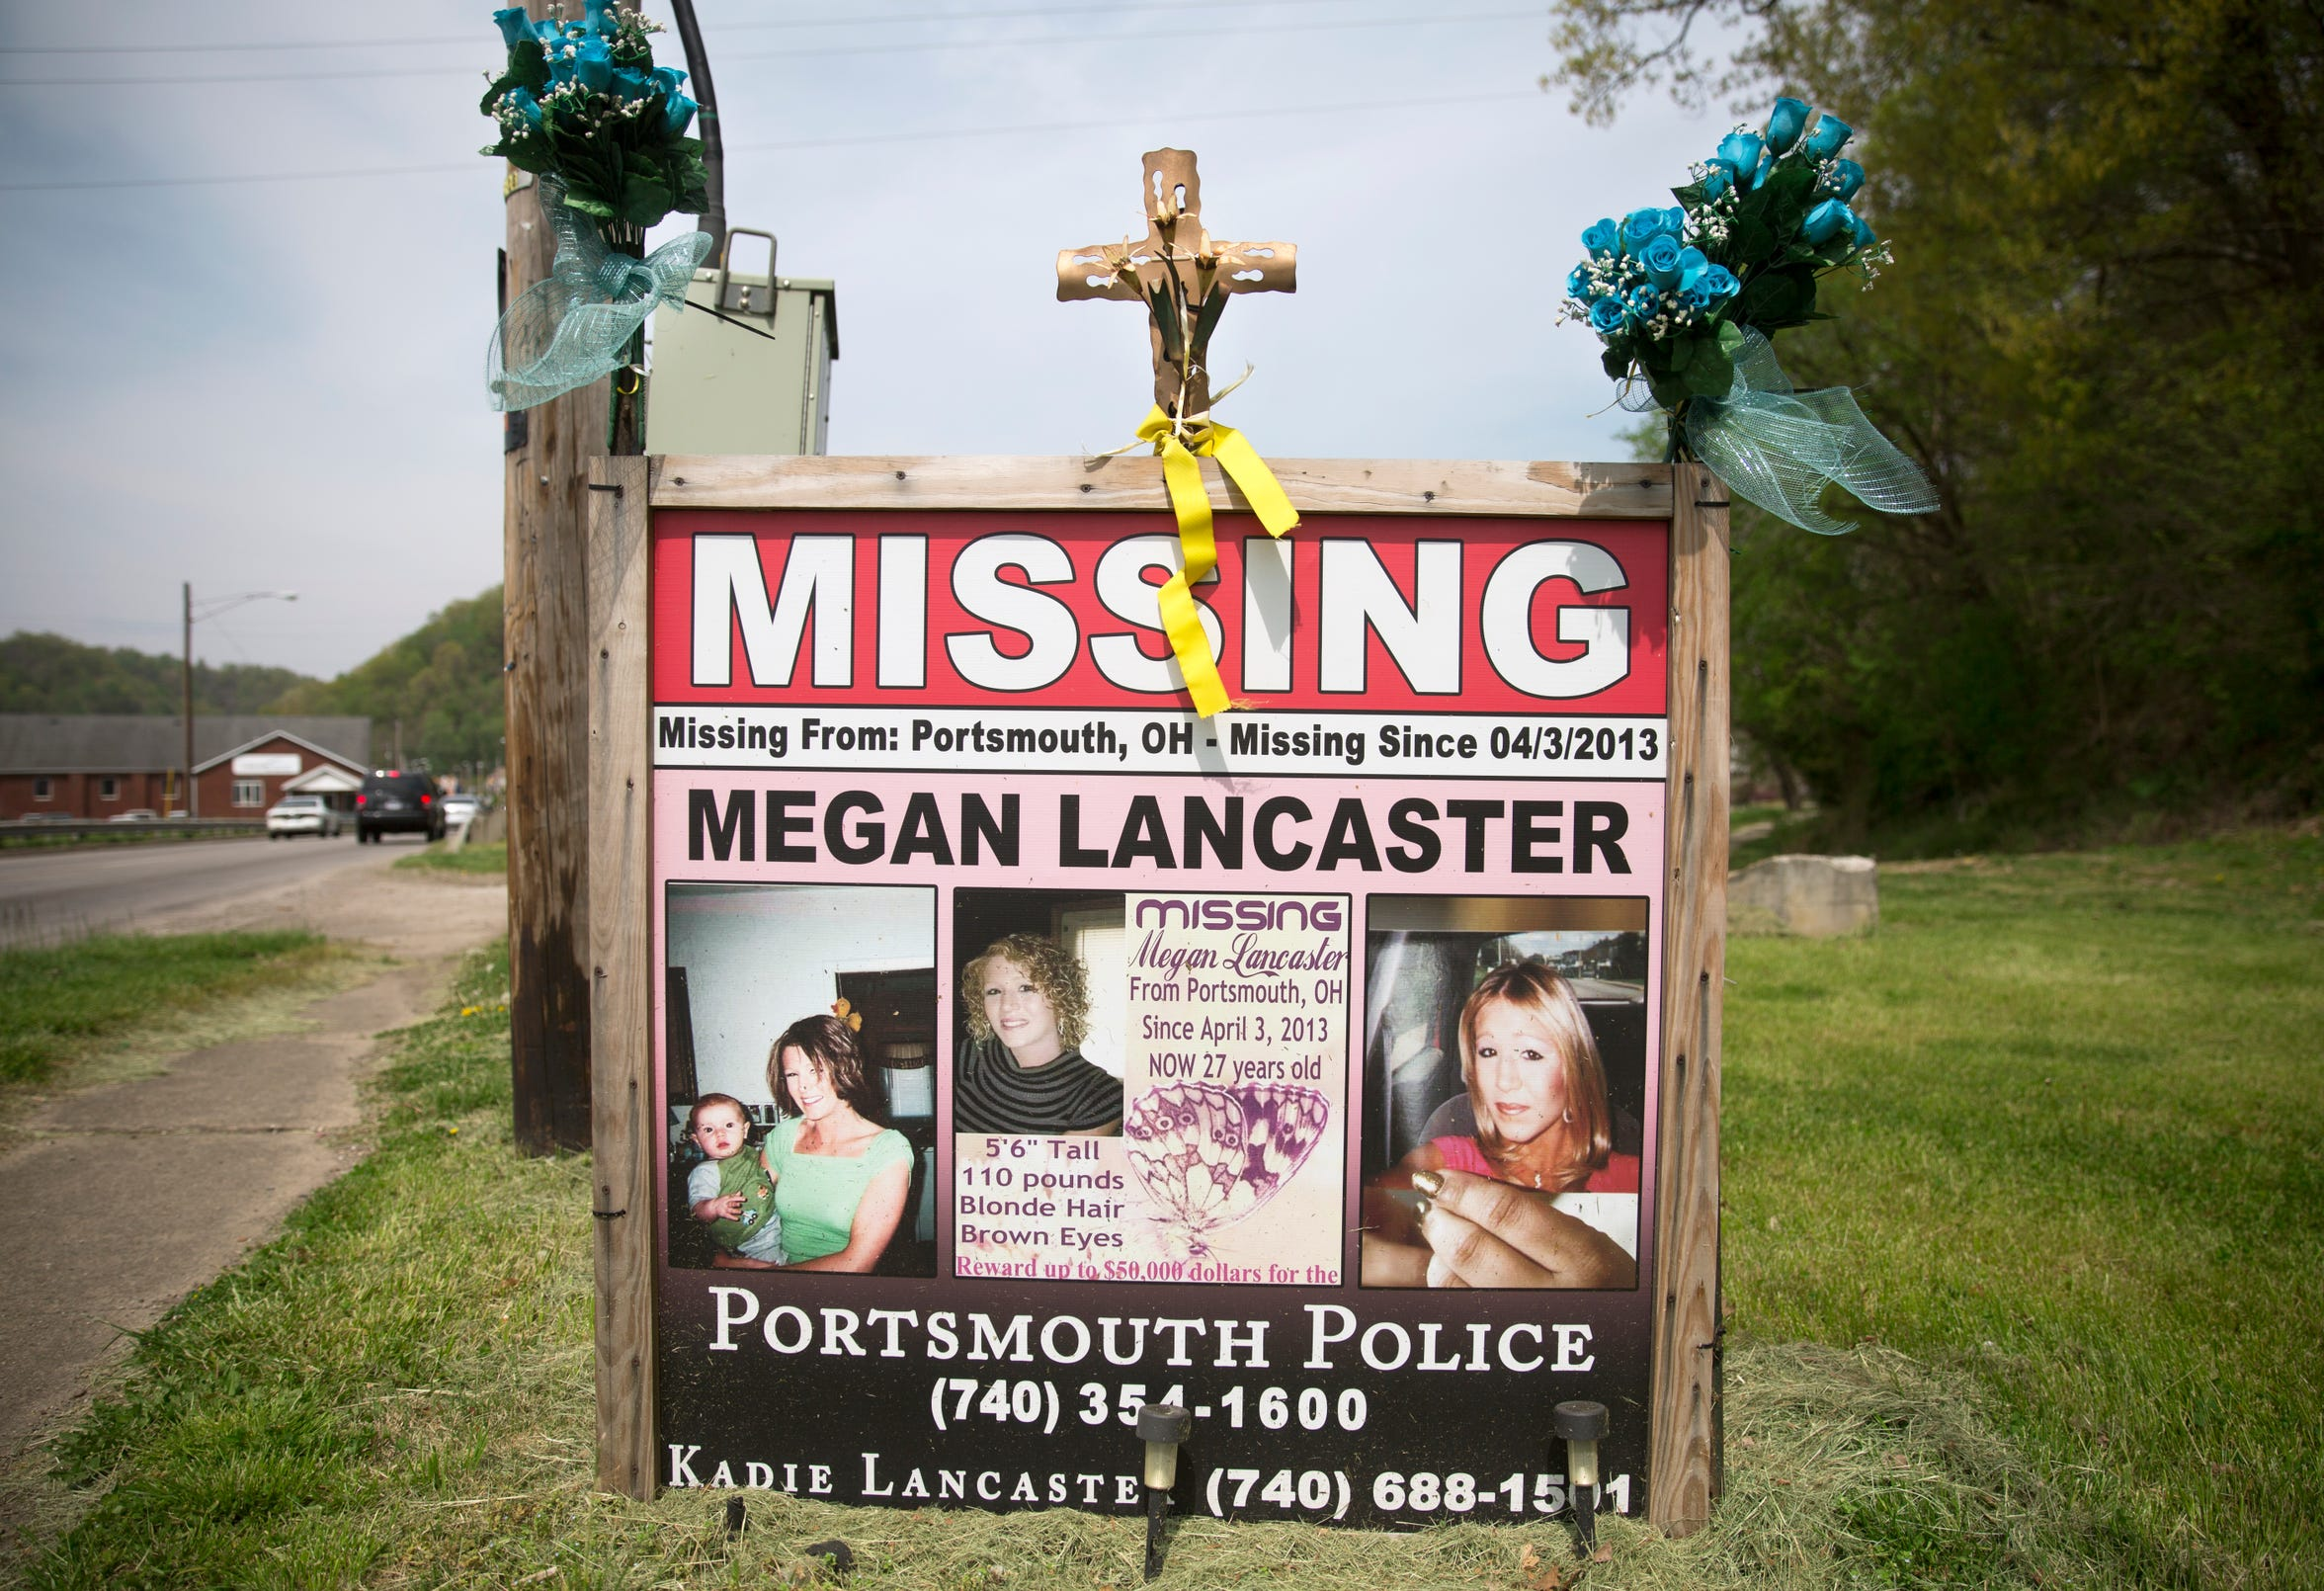 Megan Lancaster went missing in Portsmouth, Ohio in April of 2013. She's never been found. She battled addiction and was an admitted prostitute. Signs like this one in New Boston remind the community of the missing woman.